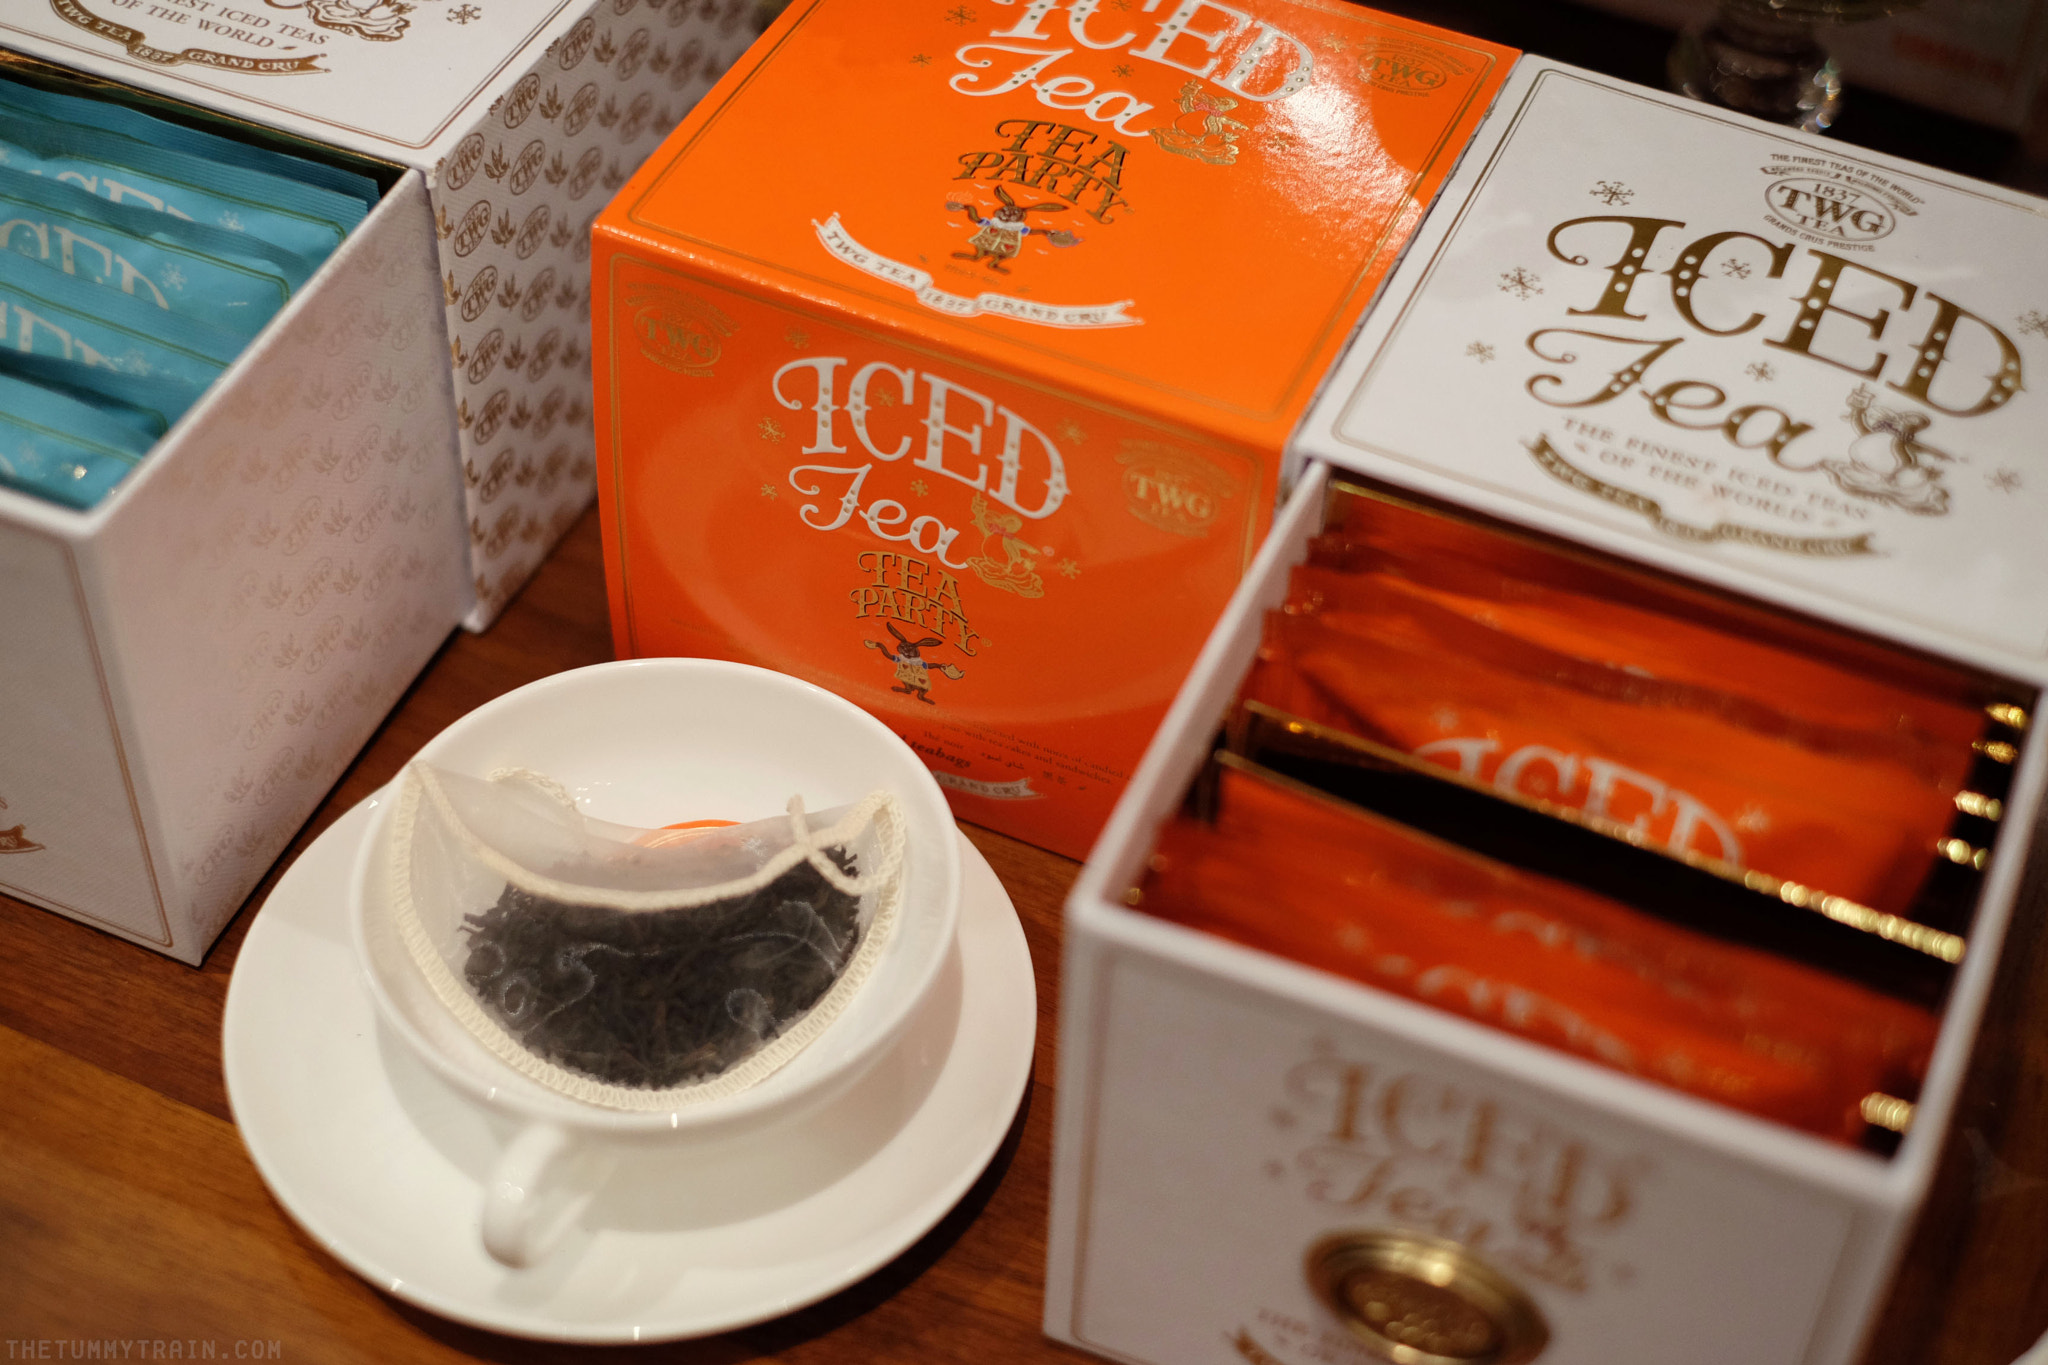 3f69ab7befe5c5d663c738fd3dfec732 - Beat the heat in luxurious style with the new TWG Iced Teas